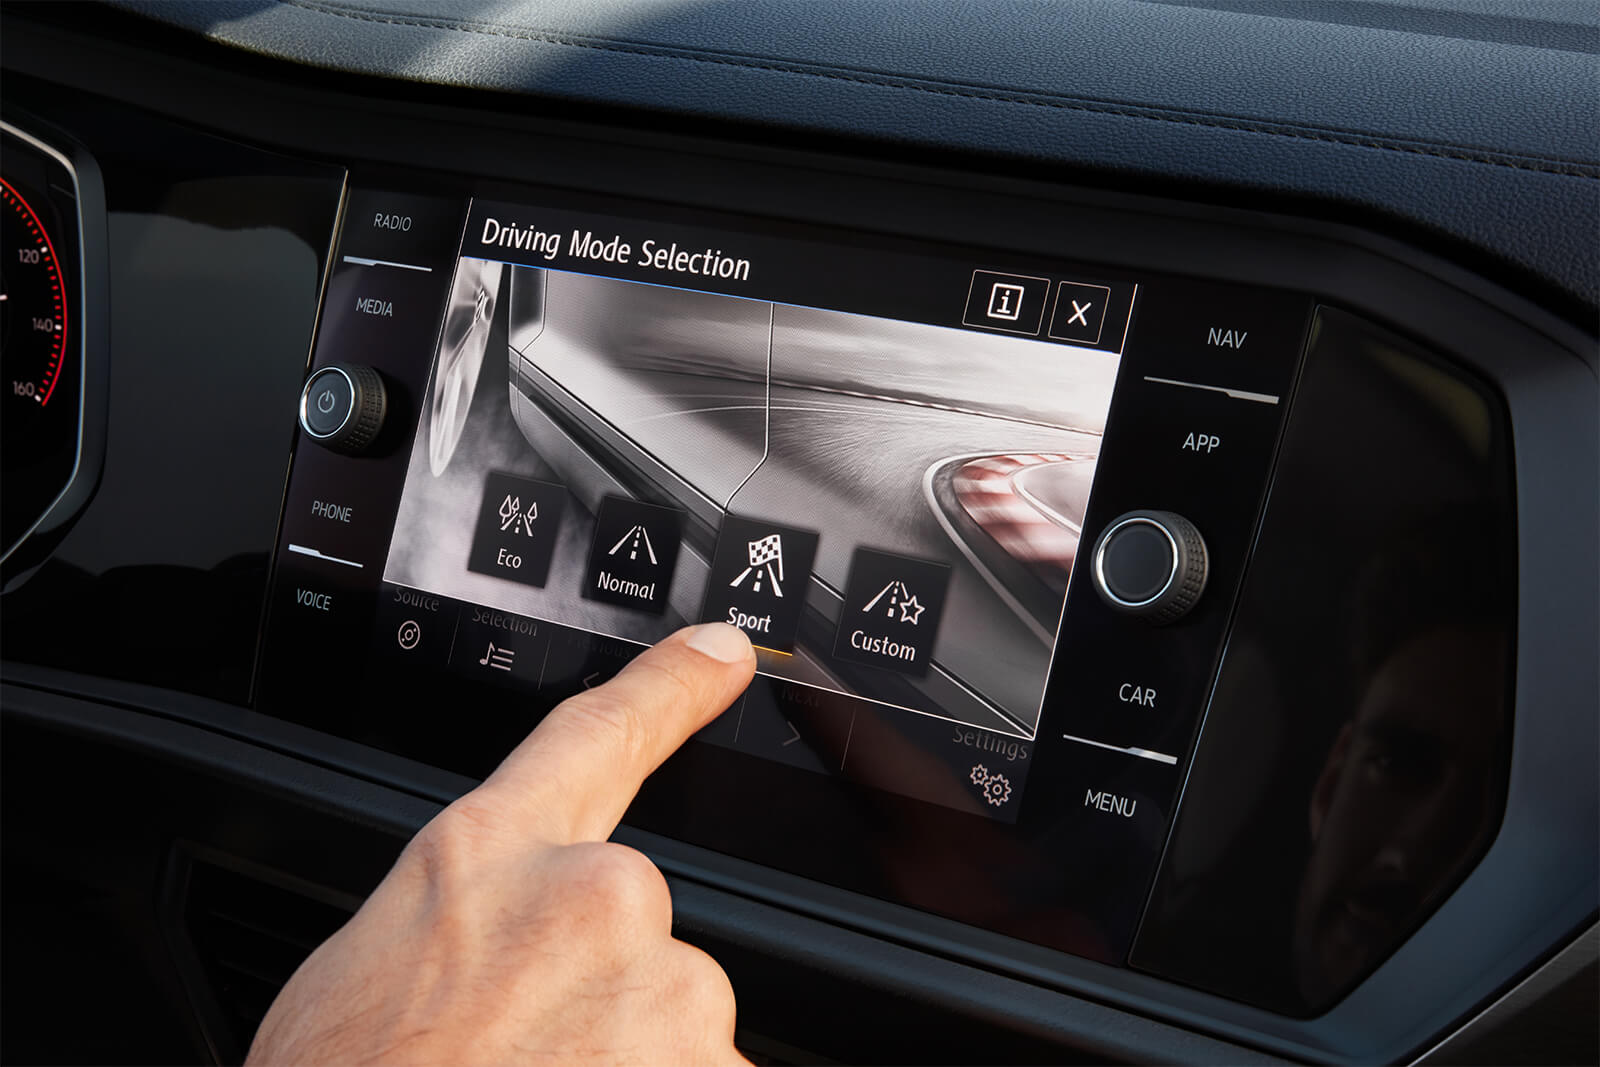 2019 Volkswagen Jetta Driving Mode Selection